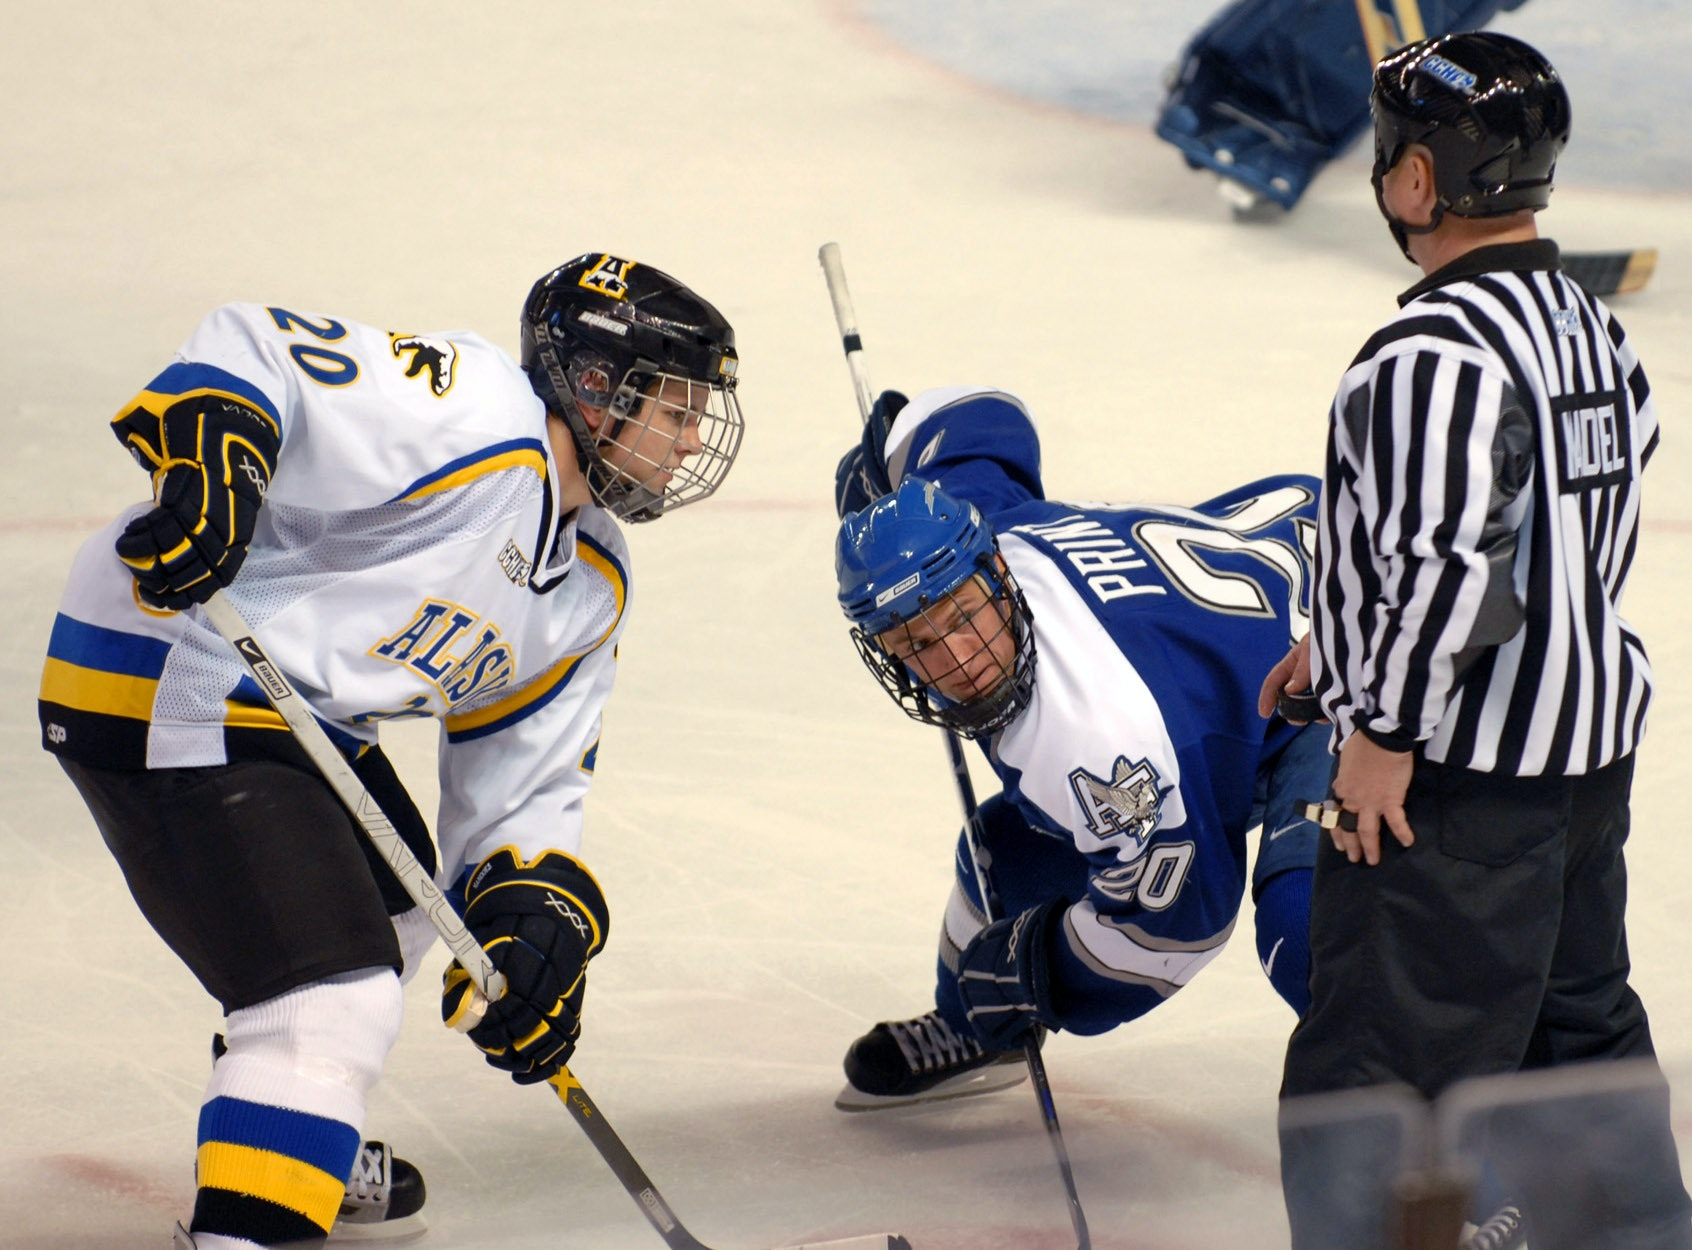 The Rising Cost Of Hockey Driving Some Families Away